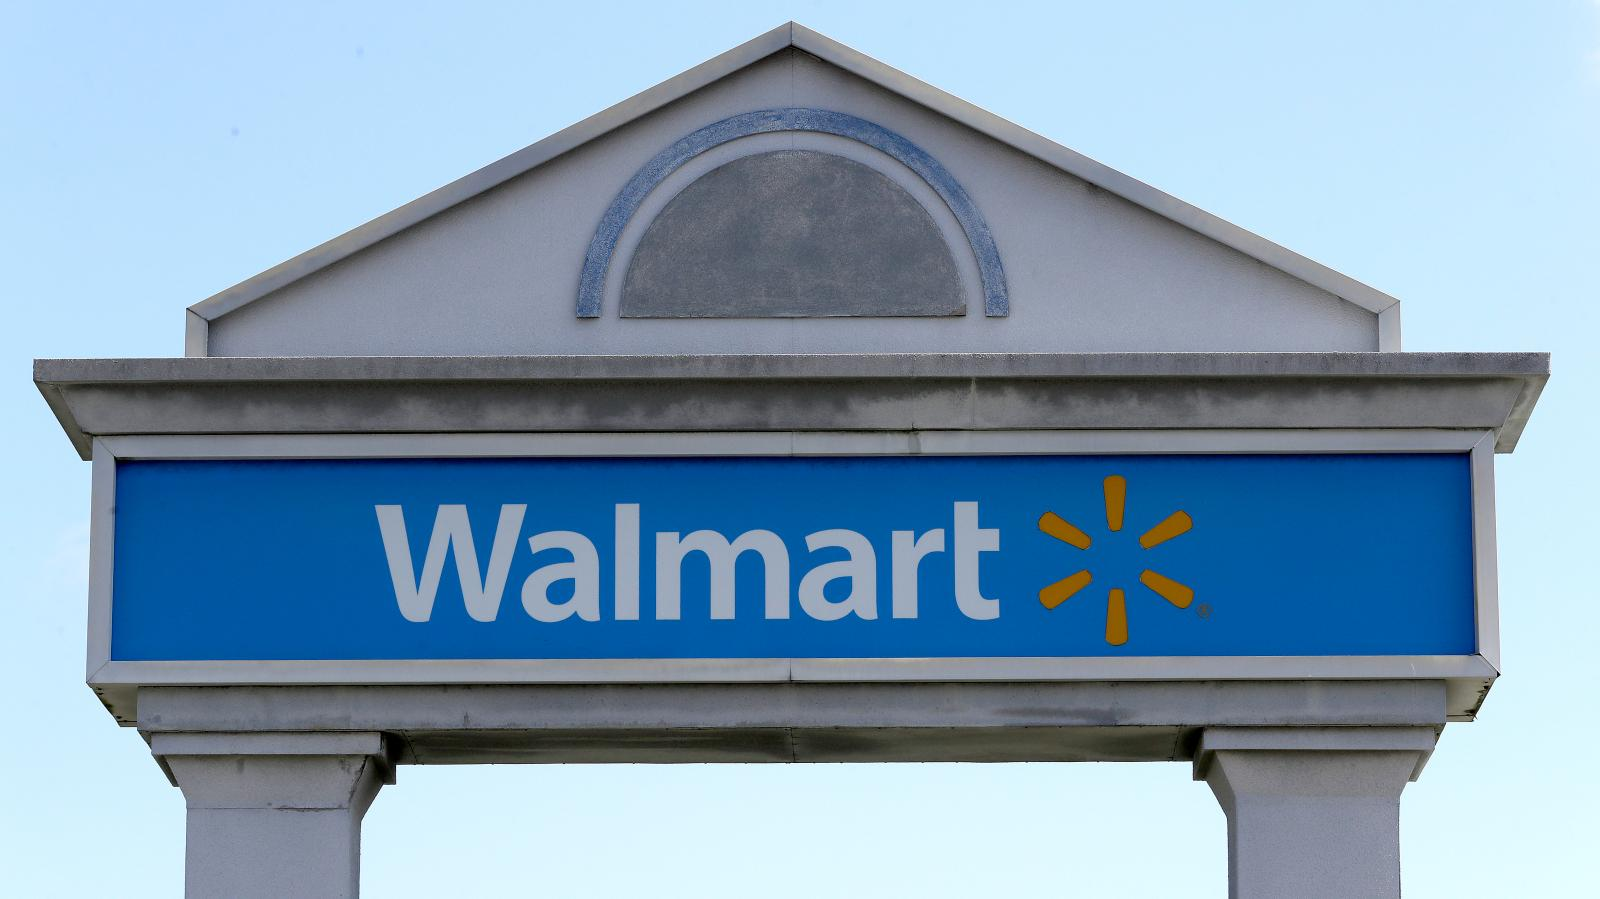 Walmart Dodged Up To $2.6 Billion In US Tax Through A 'Fictitious' Chinese Entity, Former Executive Says